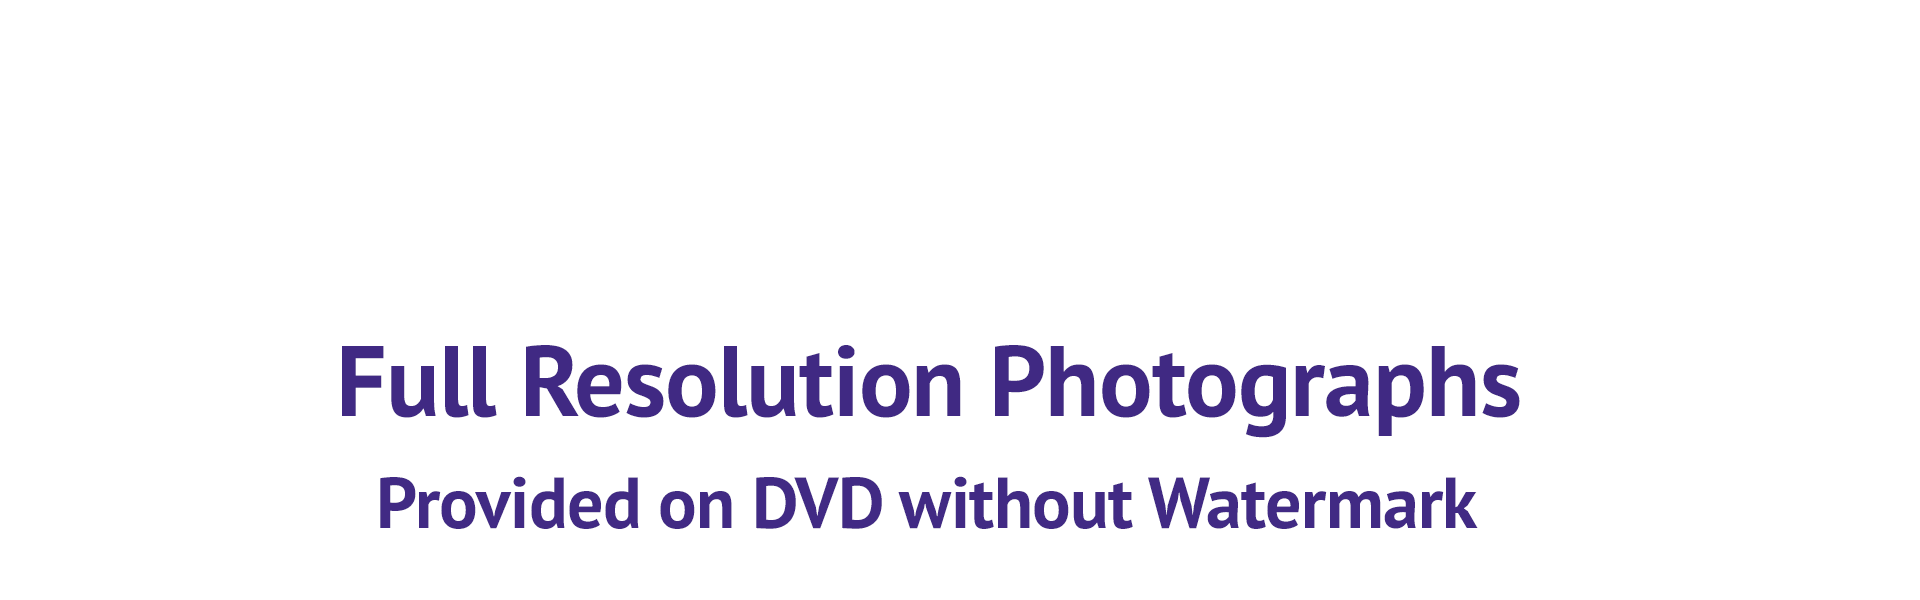 Full Resolution Photographs Provided on DVD without Watermark